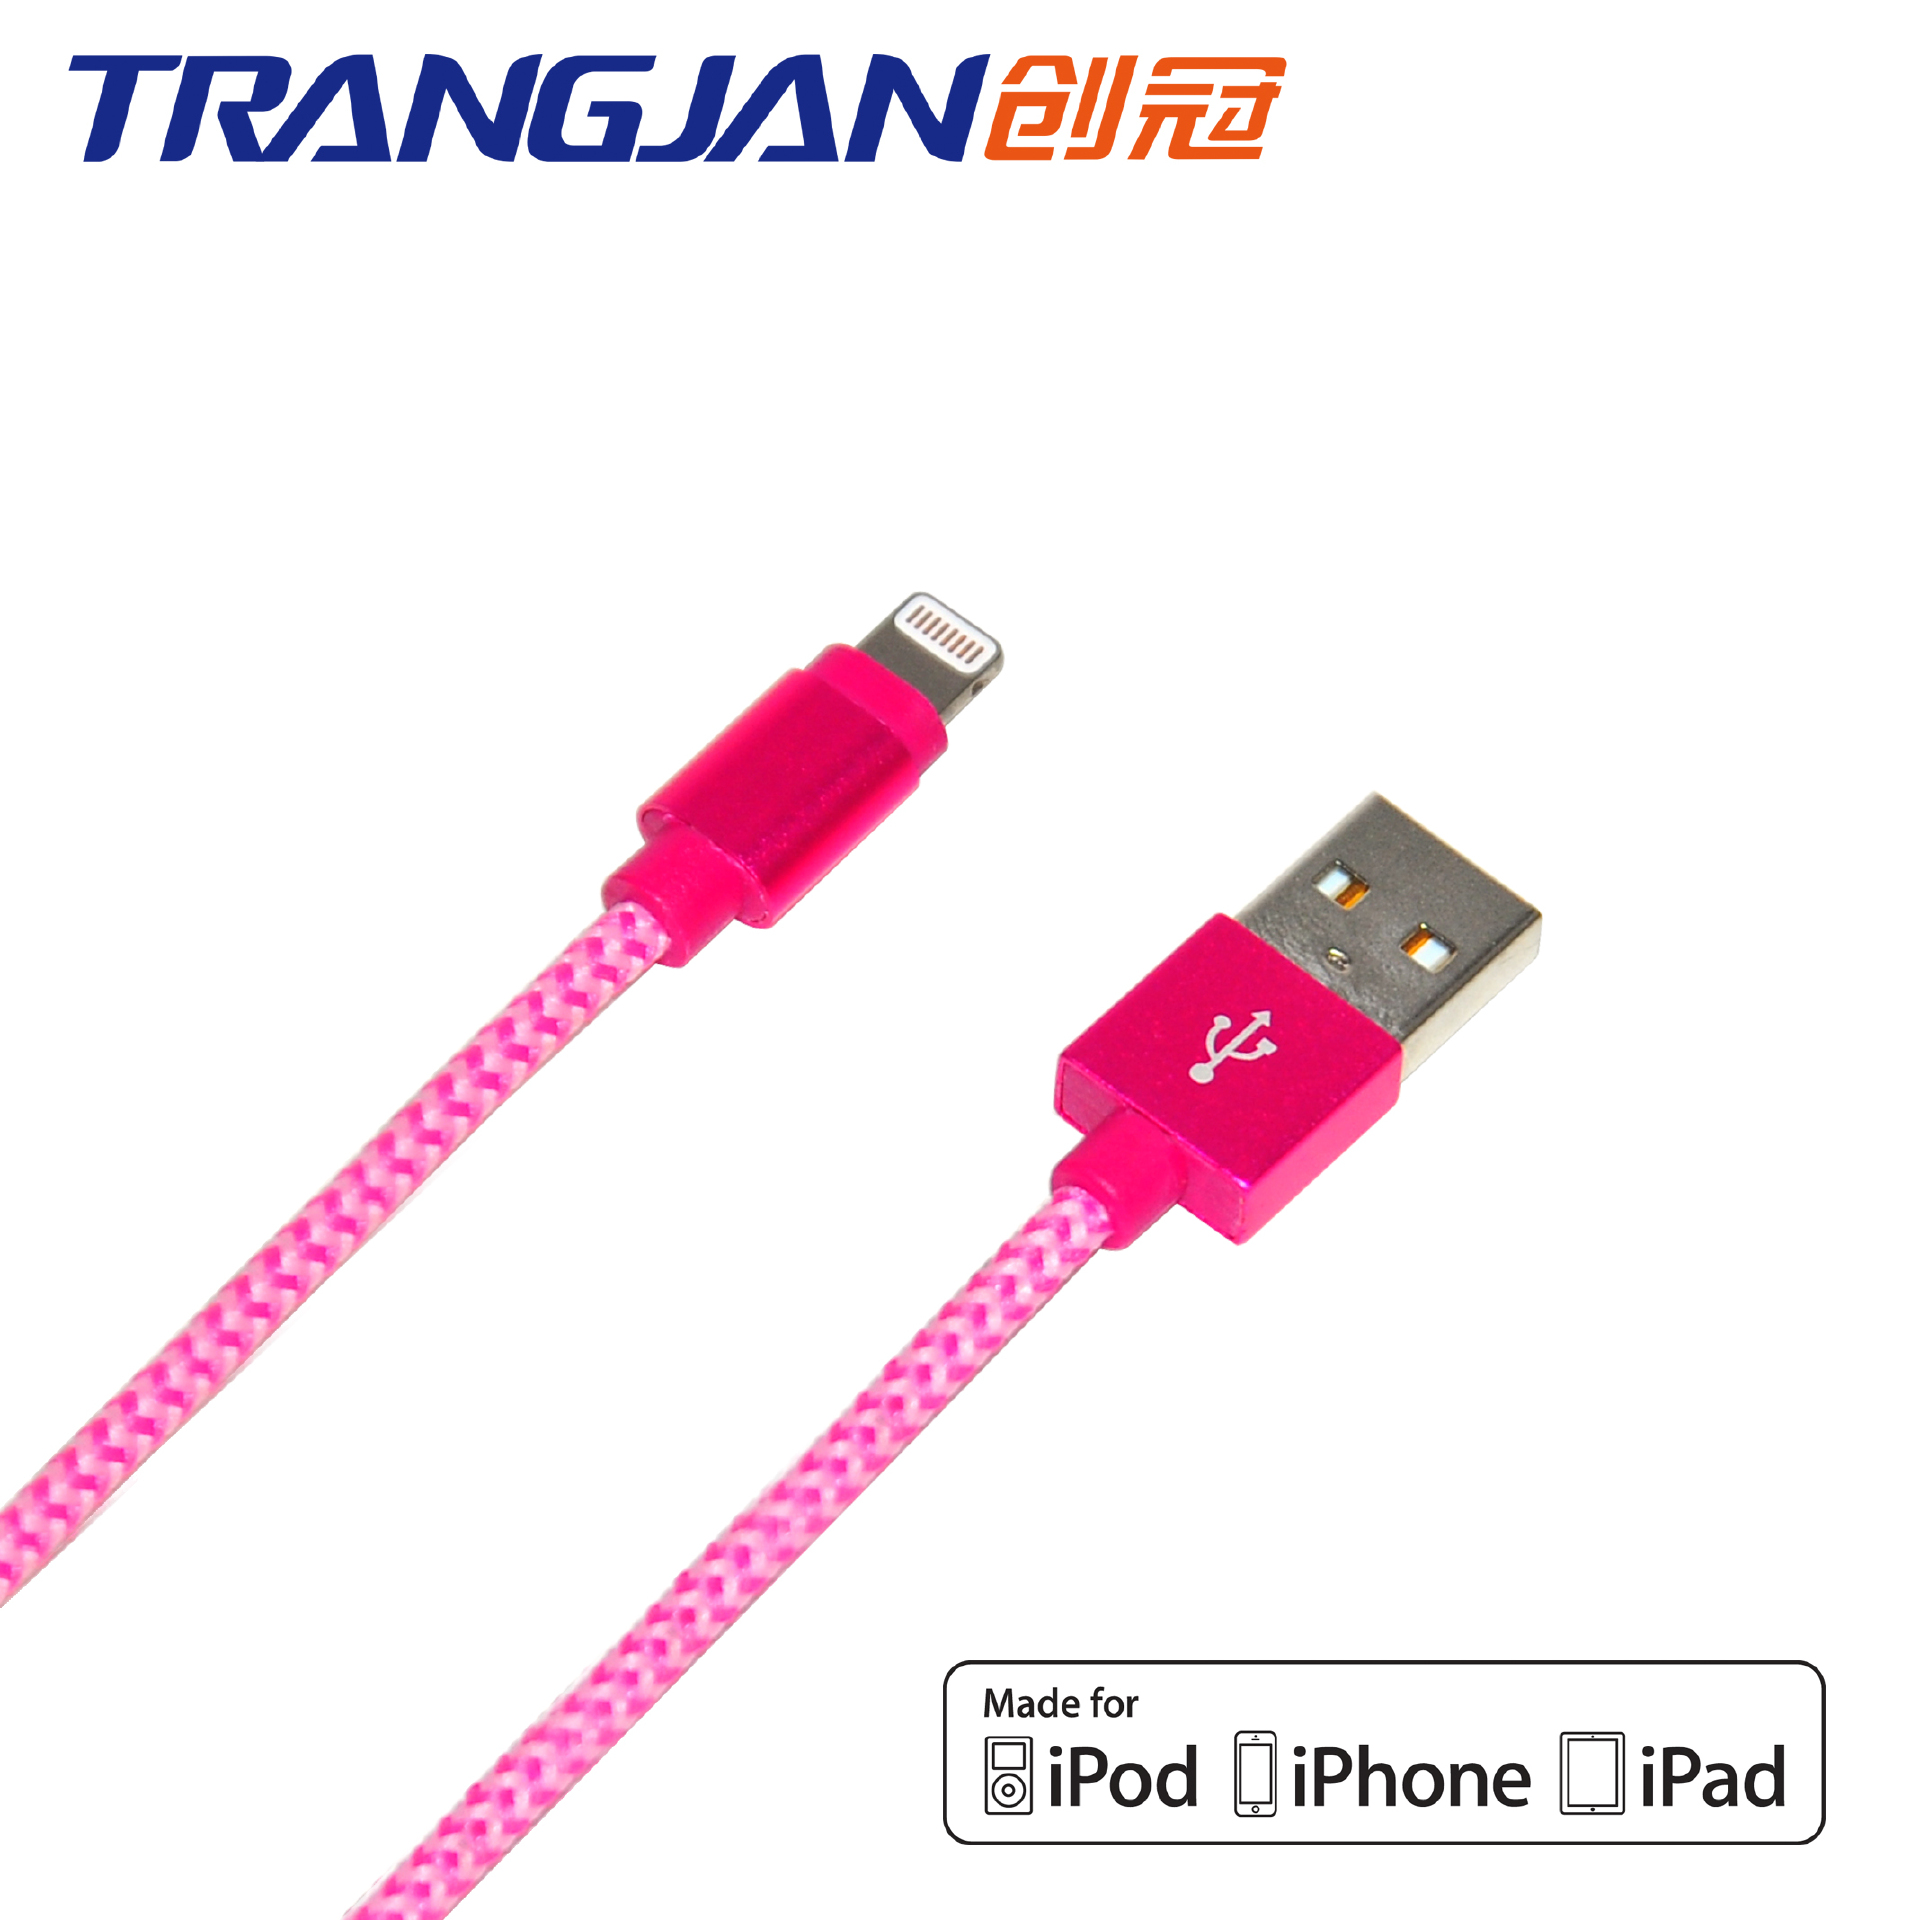 MFI Color Braided USB Data Cable